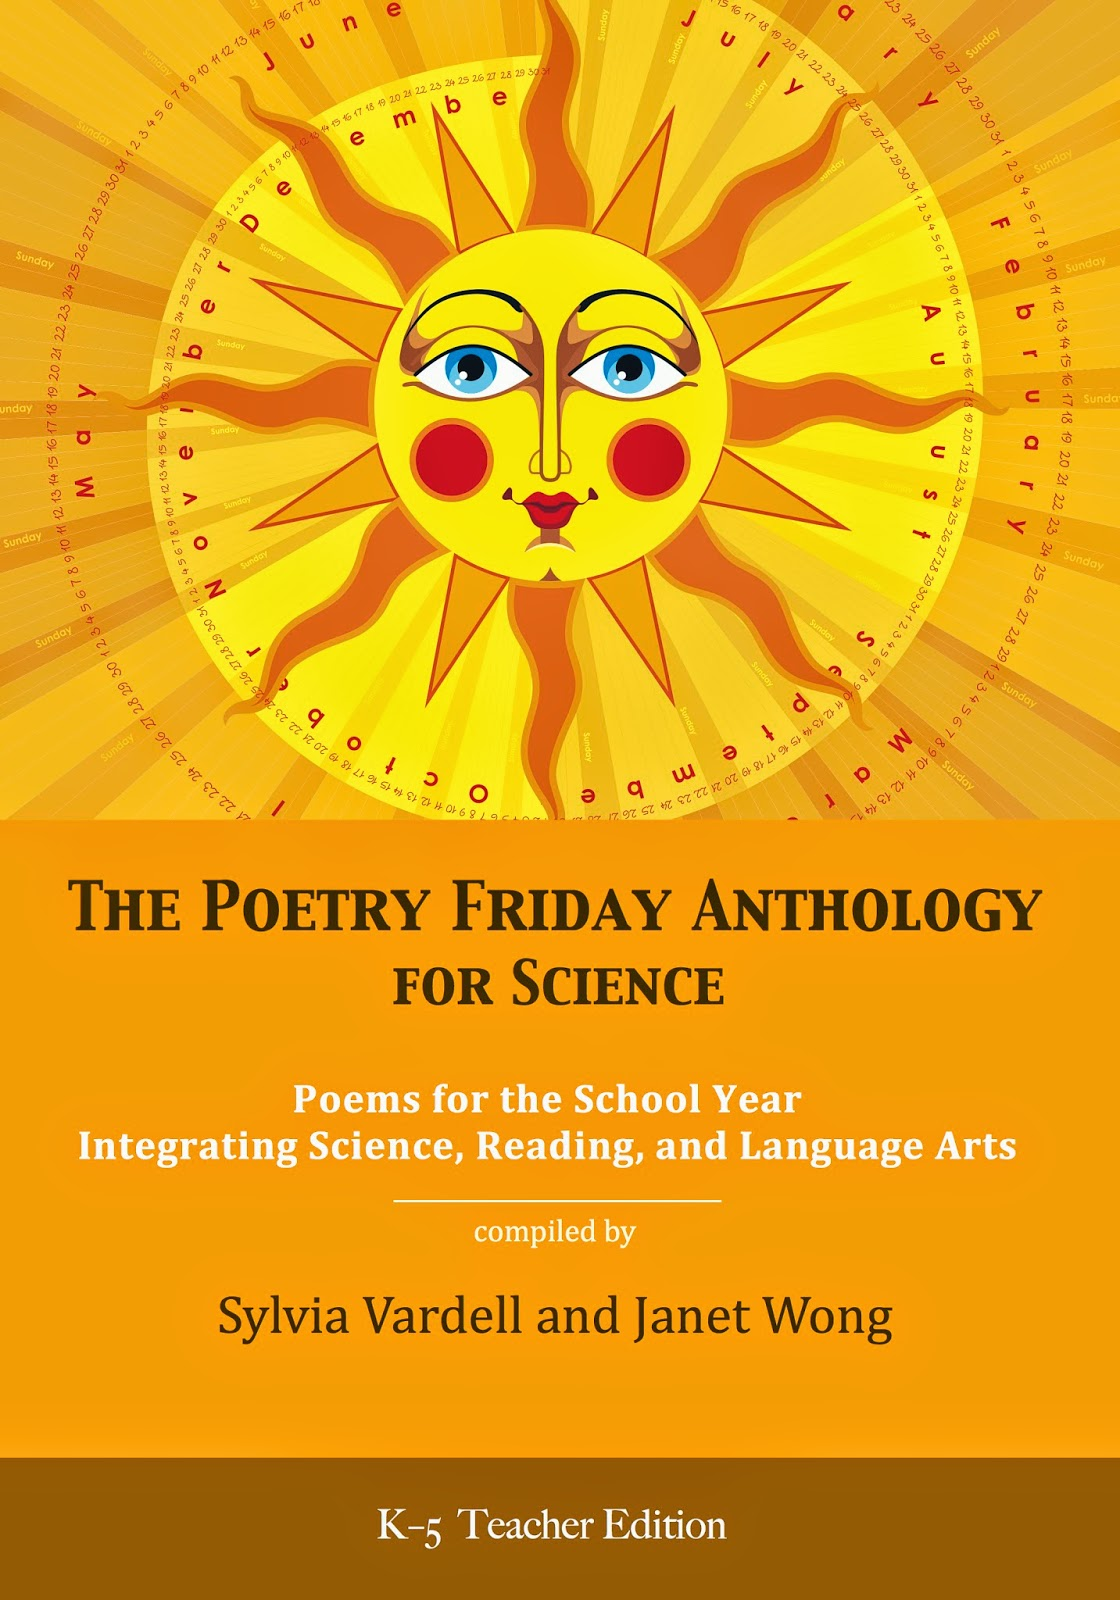 http://www.amazon.com/Poetry-Friday-Anthology-Science-Teachers/dp/1937057976/ref=sr_1_1?s=books&ie=UTF8&qid=1401670703&sr=1-1&keywords=poetry+friday+anthology+for+science